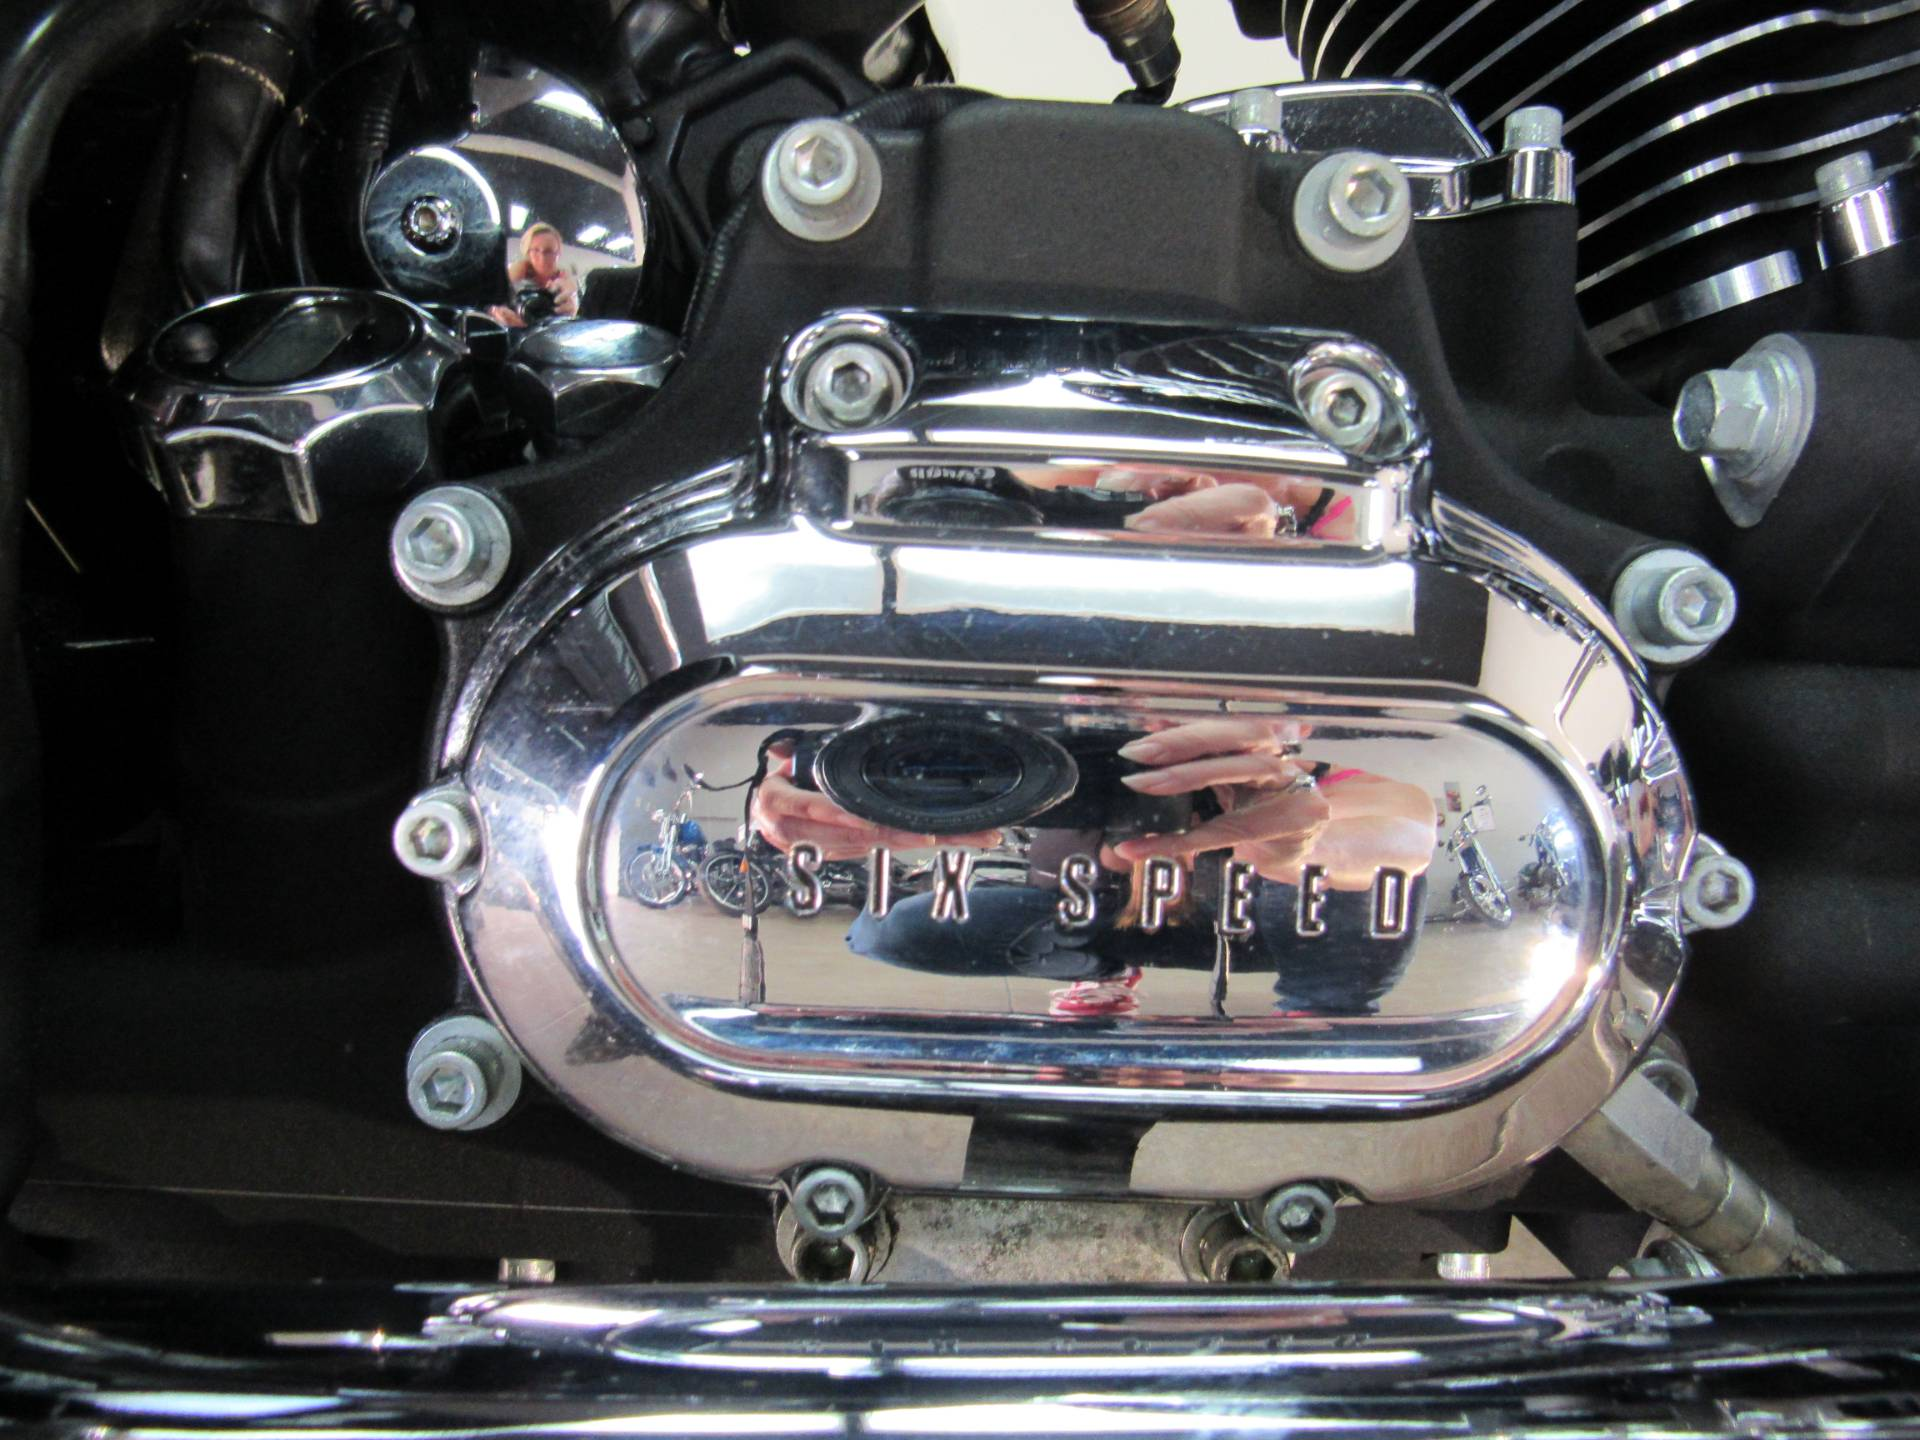 2007 Harley-Davidson FLHRC Road King® Classic in Temecula, California - Photo 21